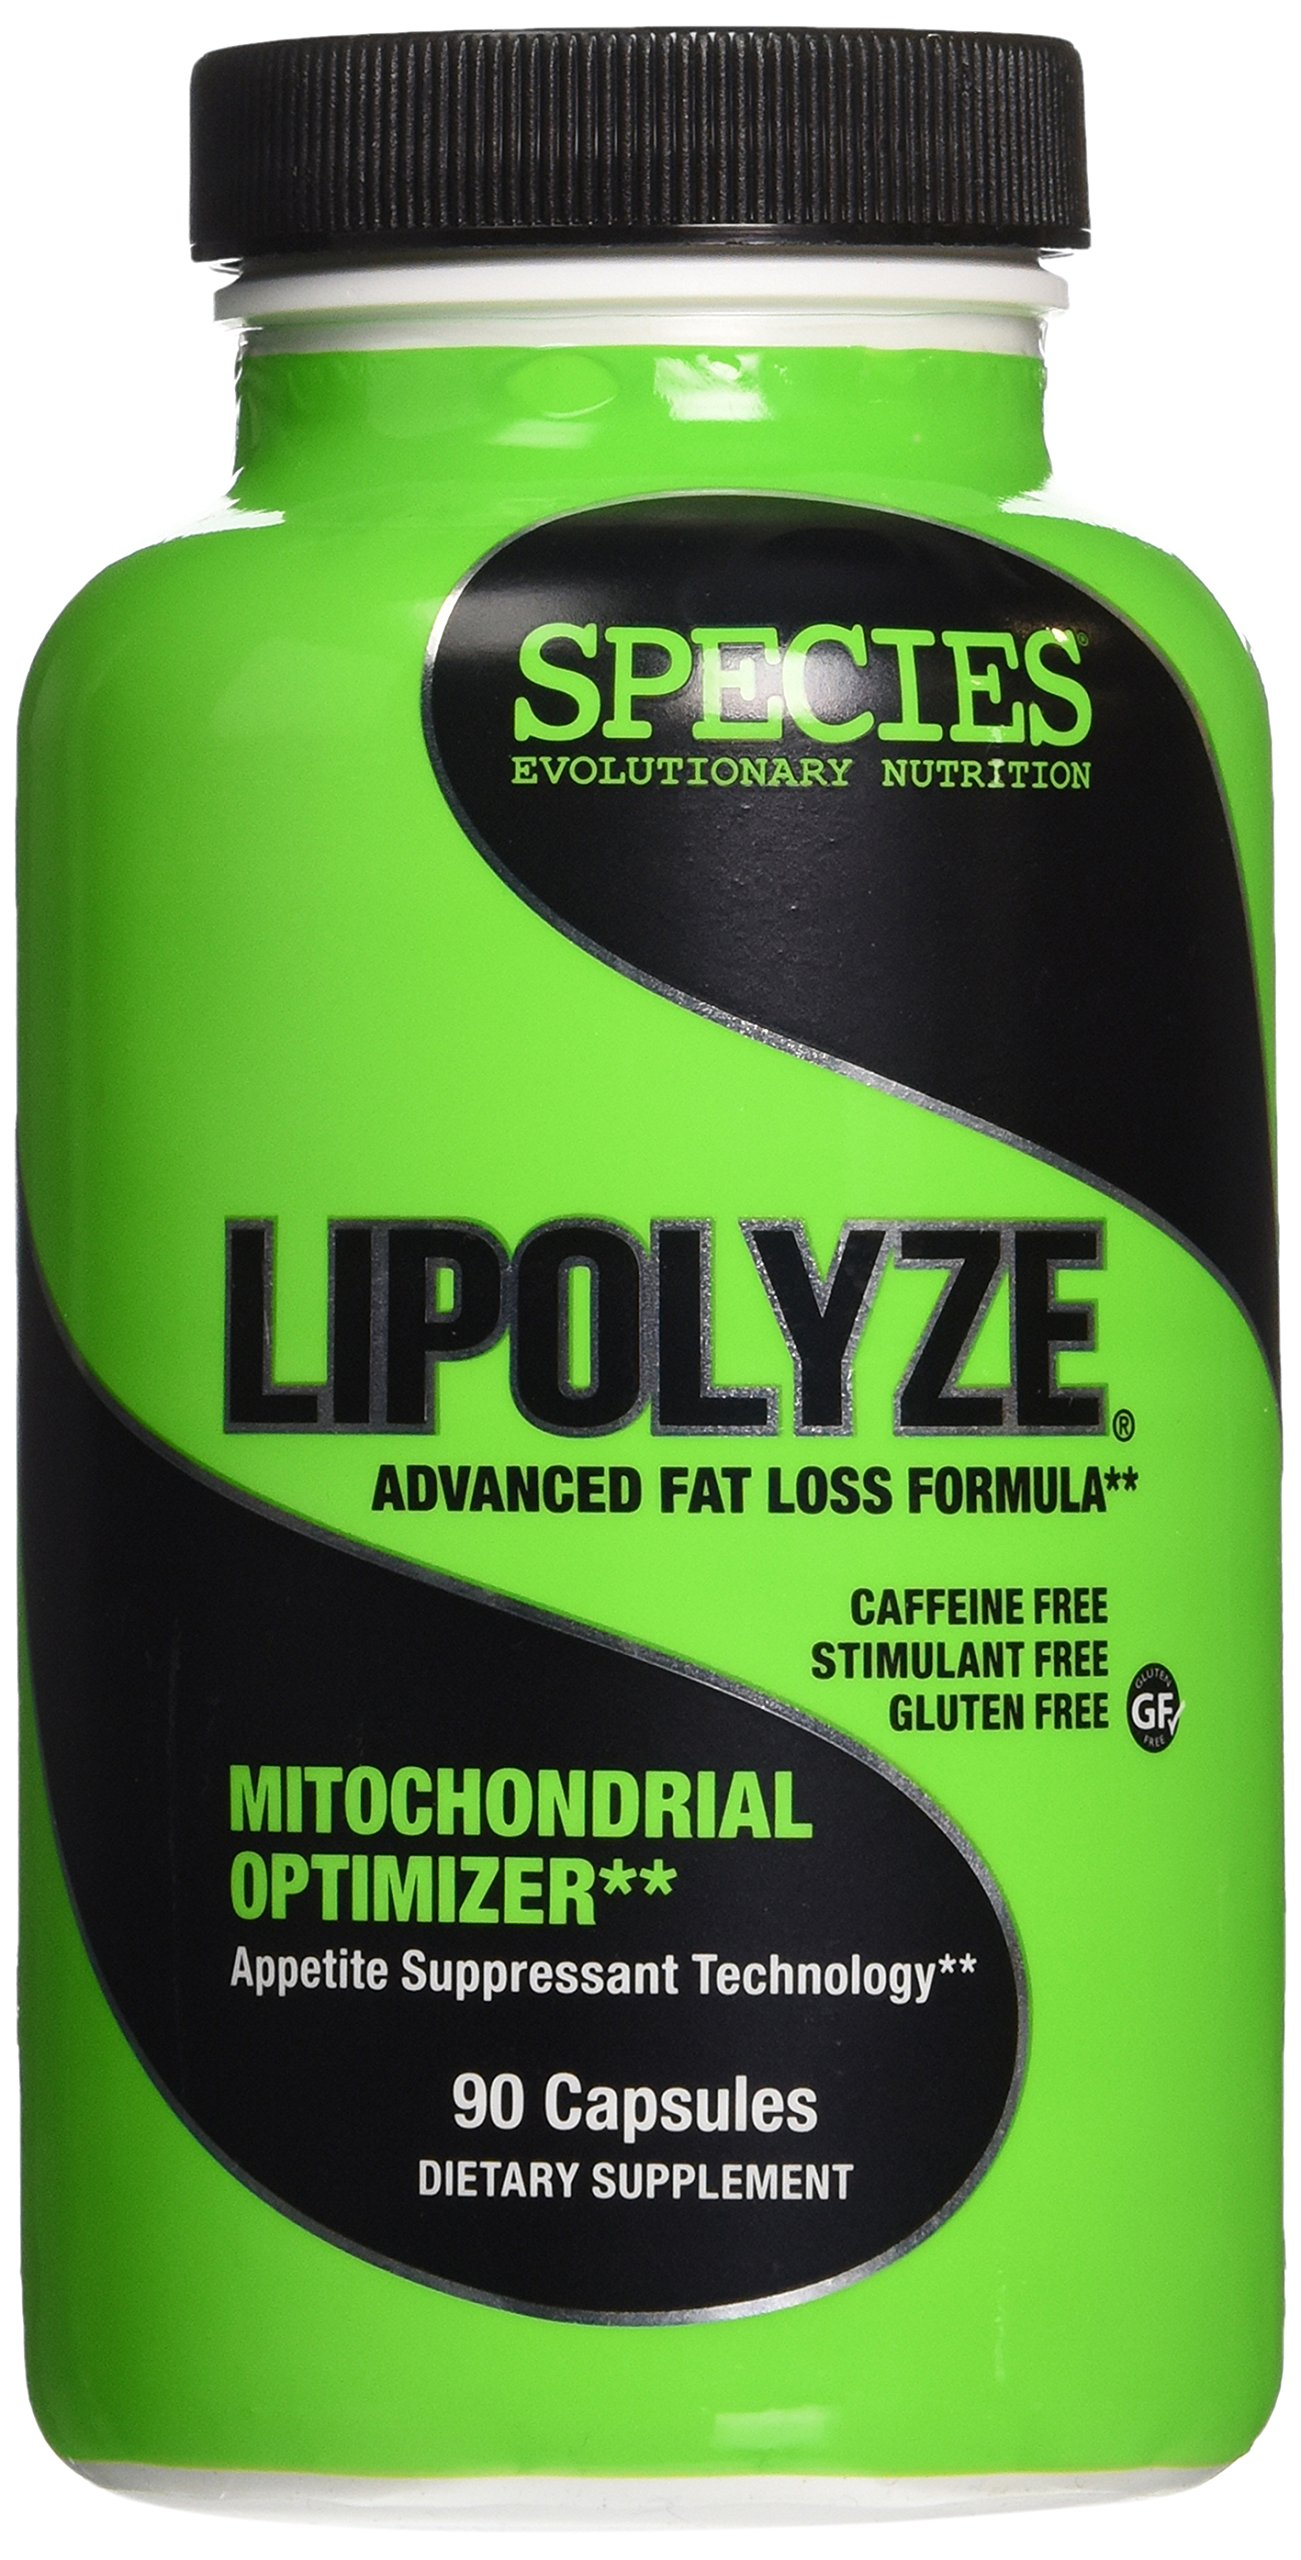 Species Nutrition Lipolyze, Stimulant Free Daytime Fat Burner and Appetite Suppressant with Green Tea Leaf Extract and Alpha Lipoic Acid, Gluten Free Caps, 90 Count